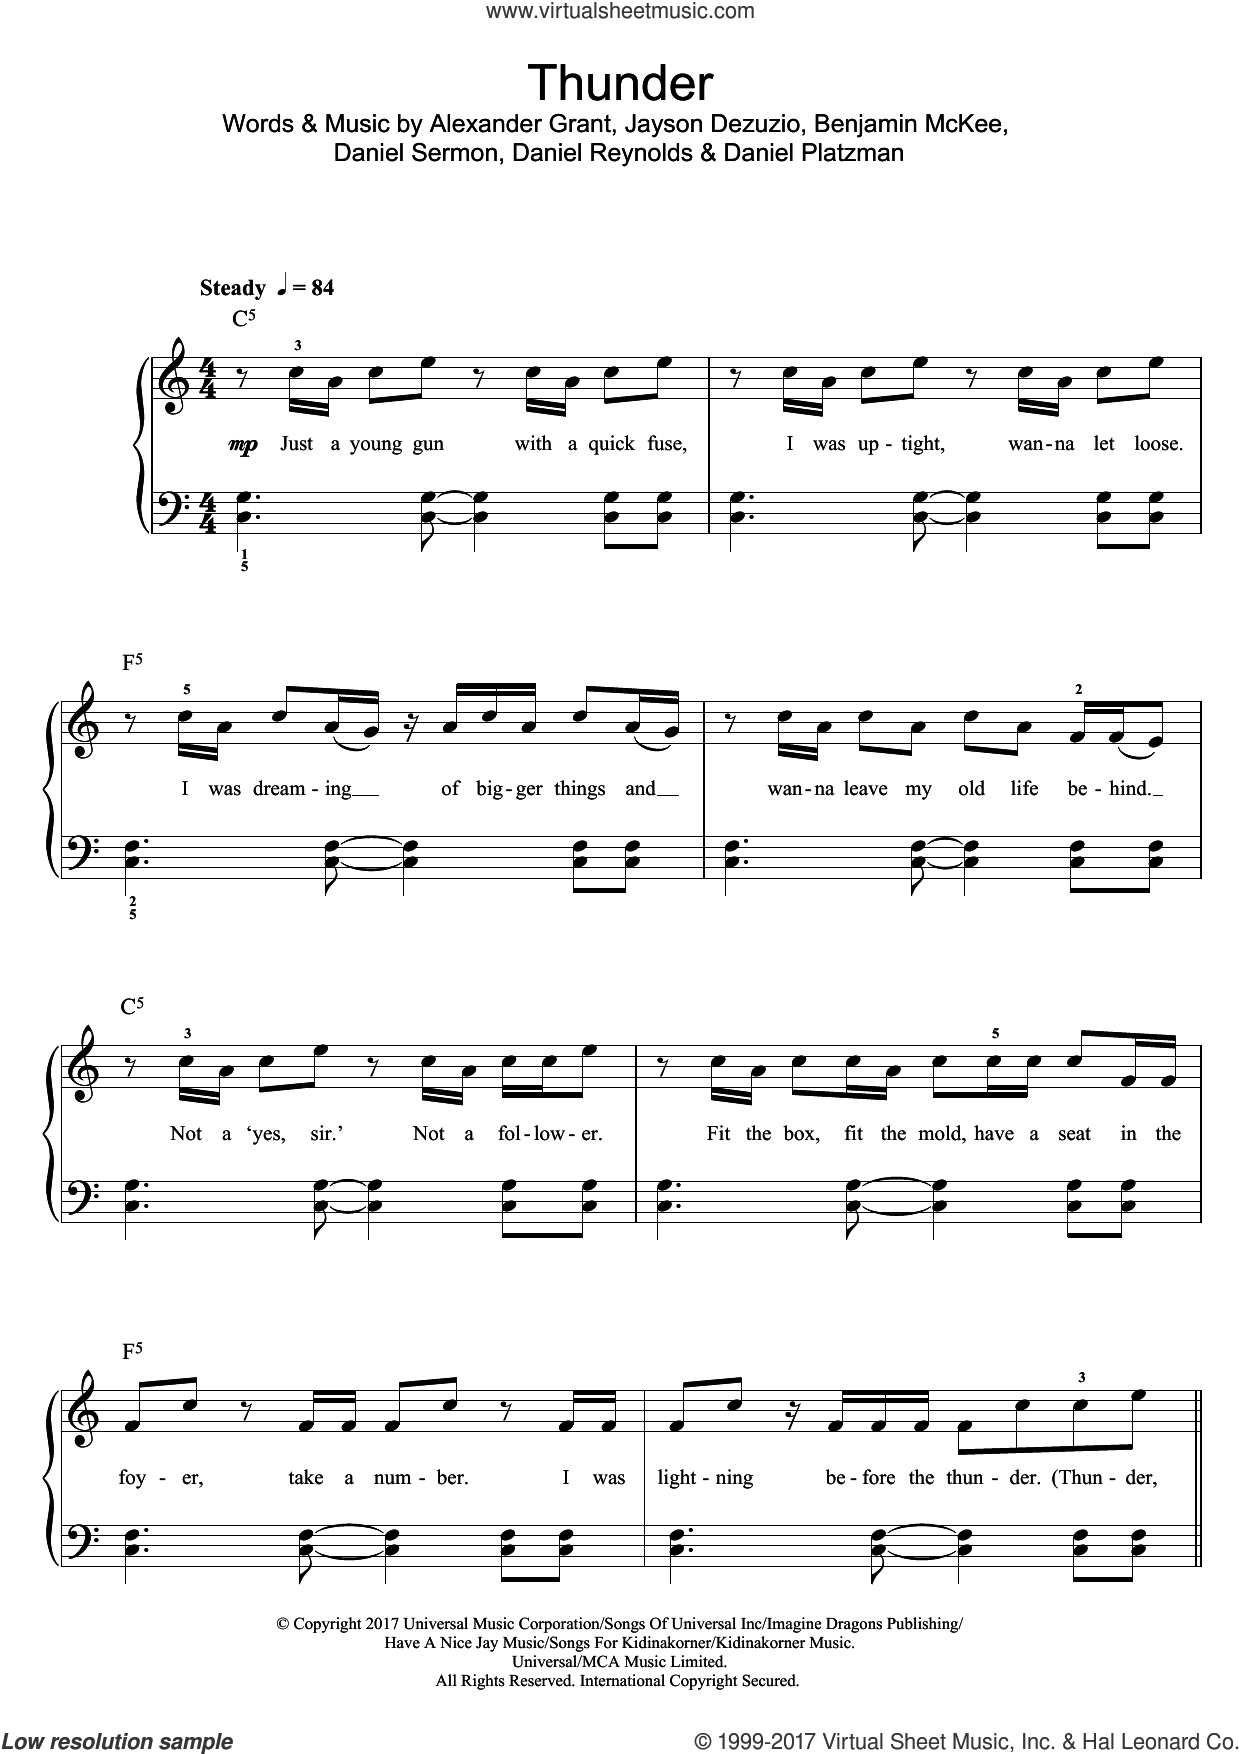 Thunder sheet music for piano solo (beginners) by Imagine Dragons, Alexander Grant, Benjamin McKee, Daniel Platzman, Daniel Reynolds, Daniel Sermon and Jayson Dezuzio, beginner piano (beginners)